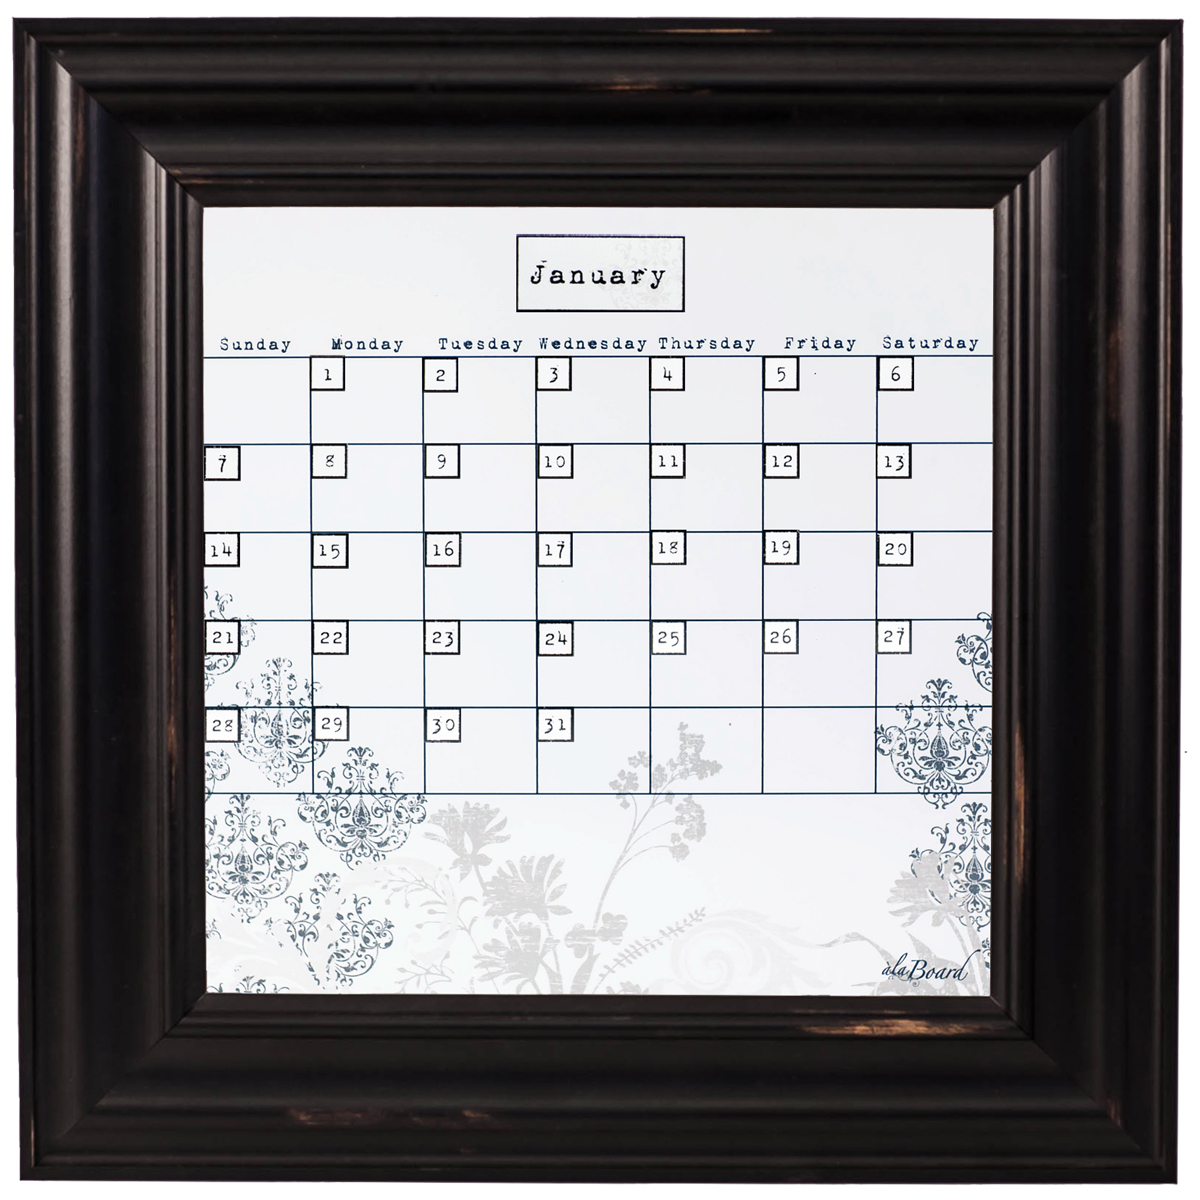 Small Floral Calendar Board Framed Black Wood